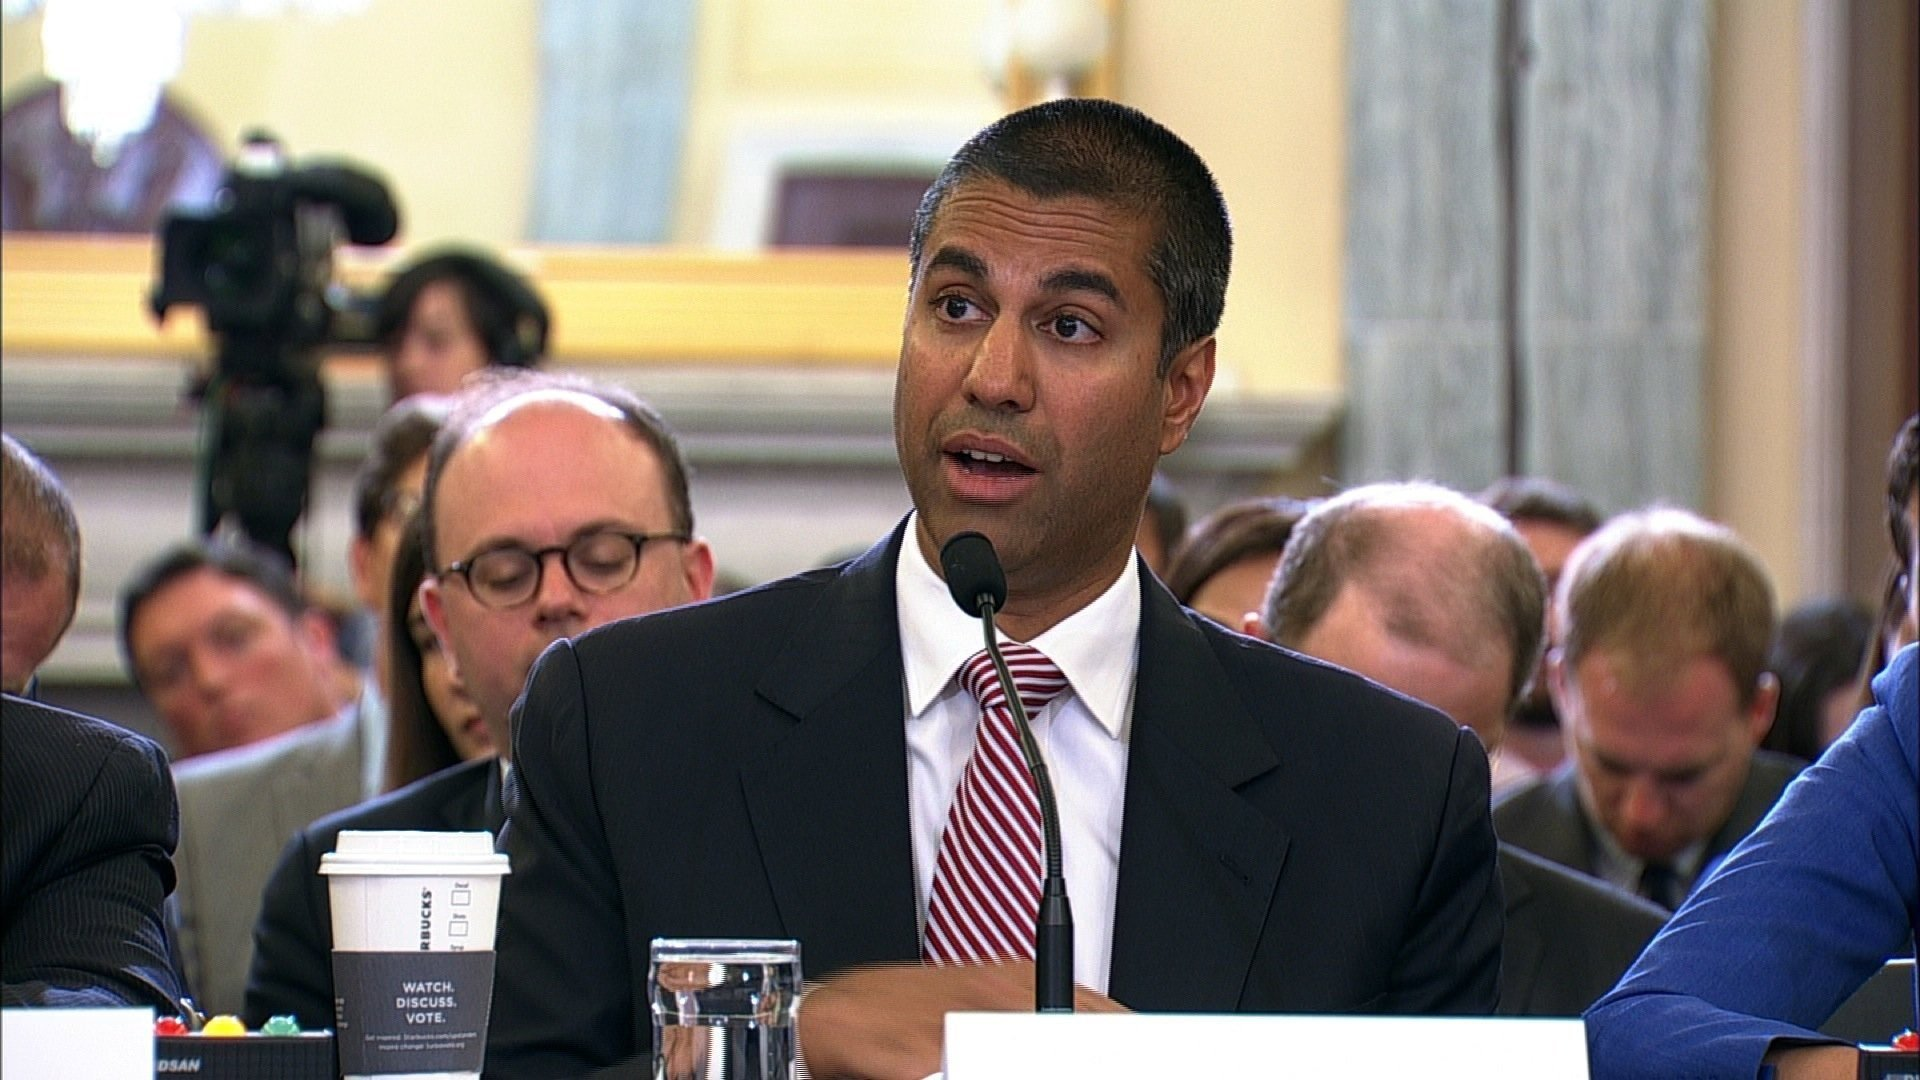 Ajit Pai, the chairman of the Federal Communications Commission, was grilled by two senators Wednesday about whether he agrees with Trump's recent claim that the media is the enemy of the American people. Pai is seen here speaking at a committee...